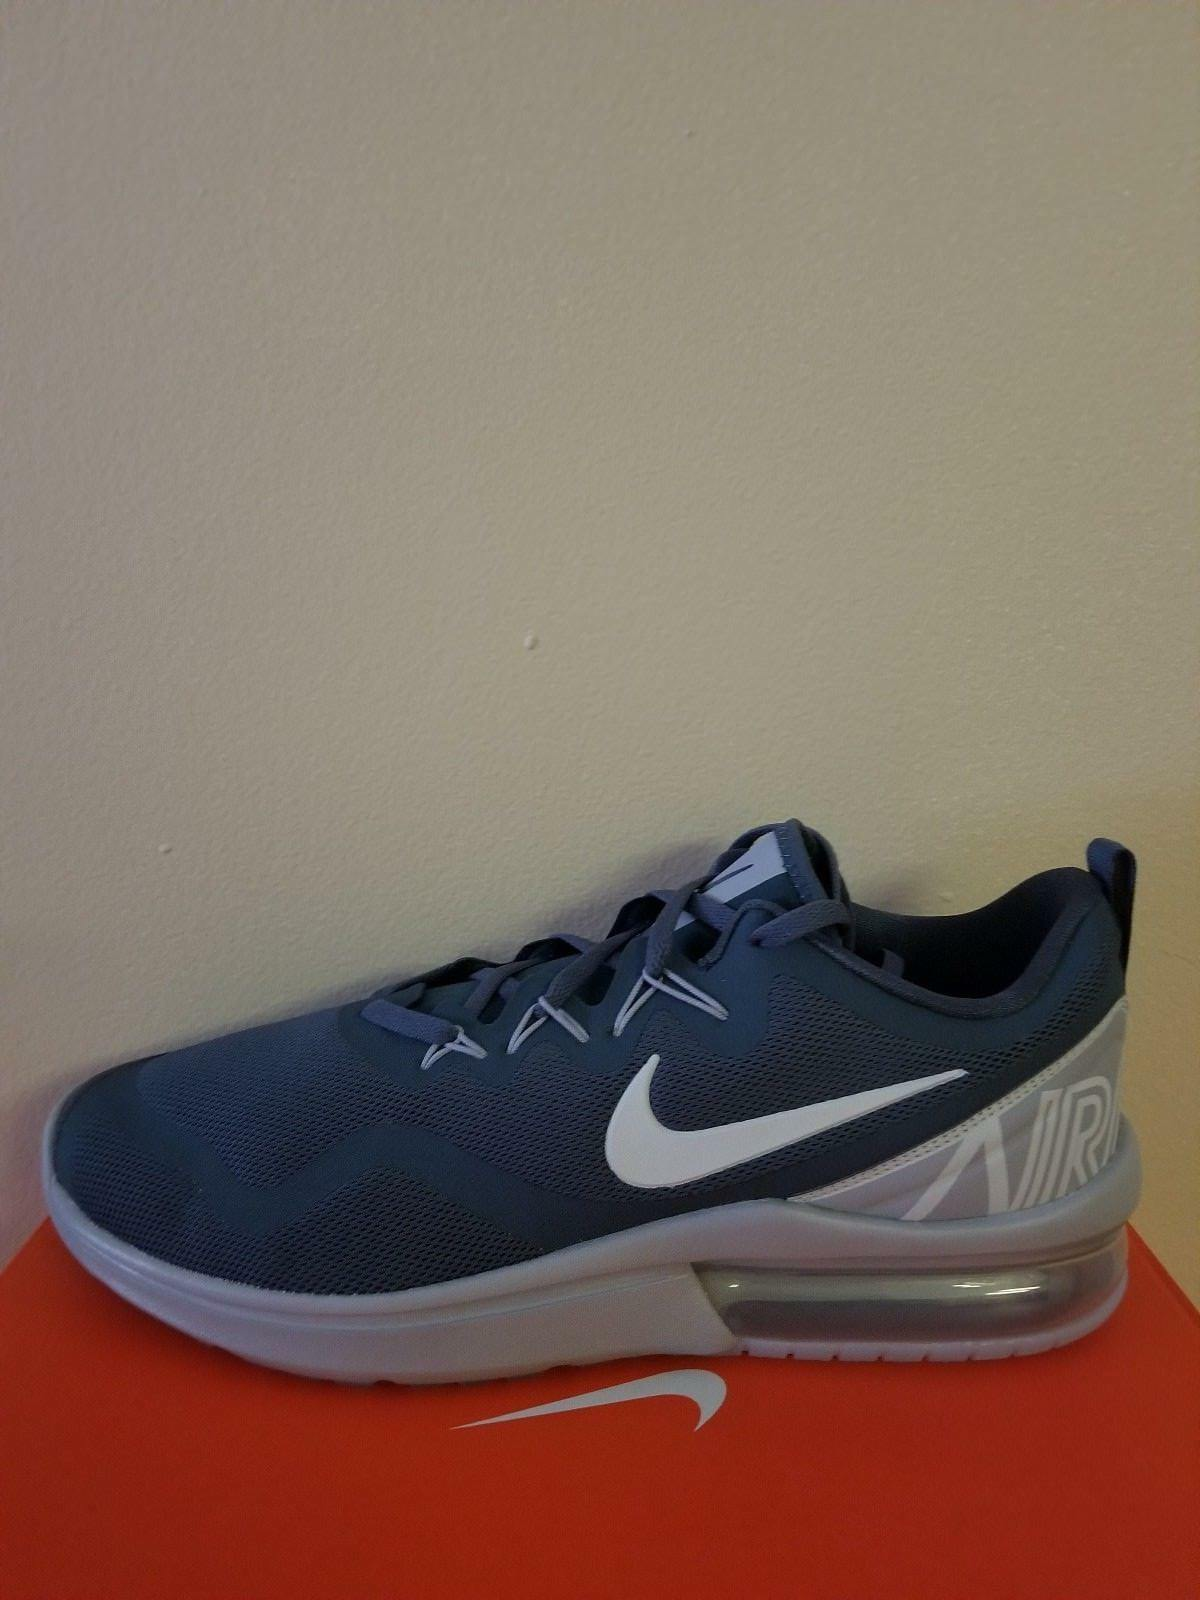 Nike Men's Air Max Fury Running shoes Size 9.5 NIB